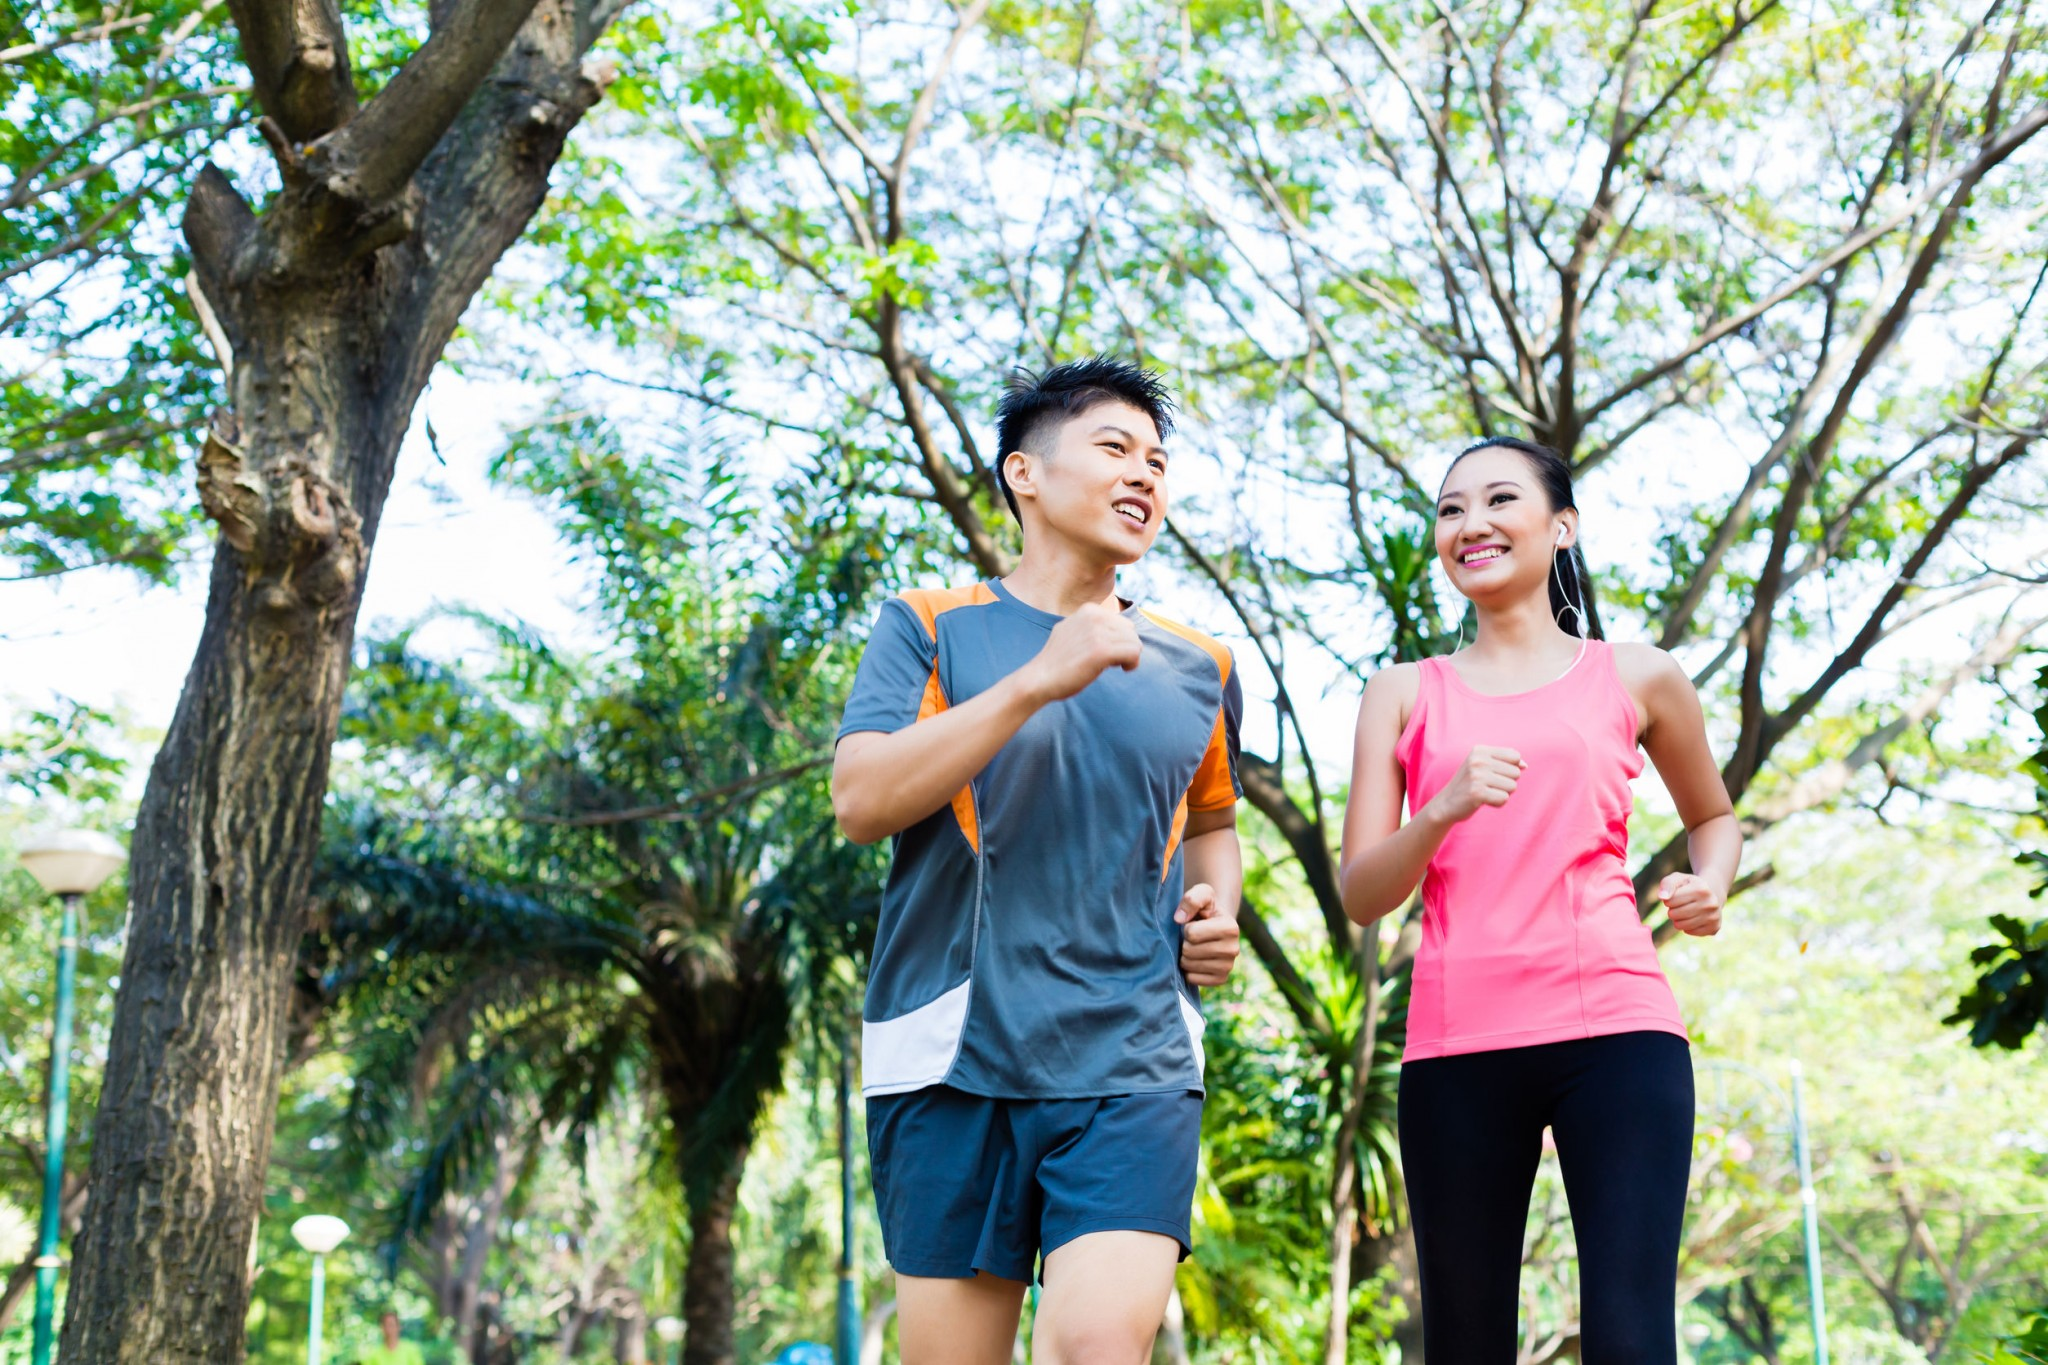 asian-chinese-man-and-woman-jogging-in-city-park-exercise